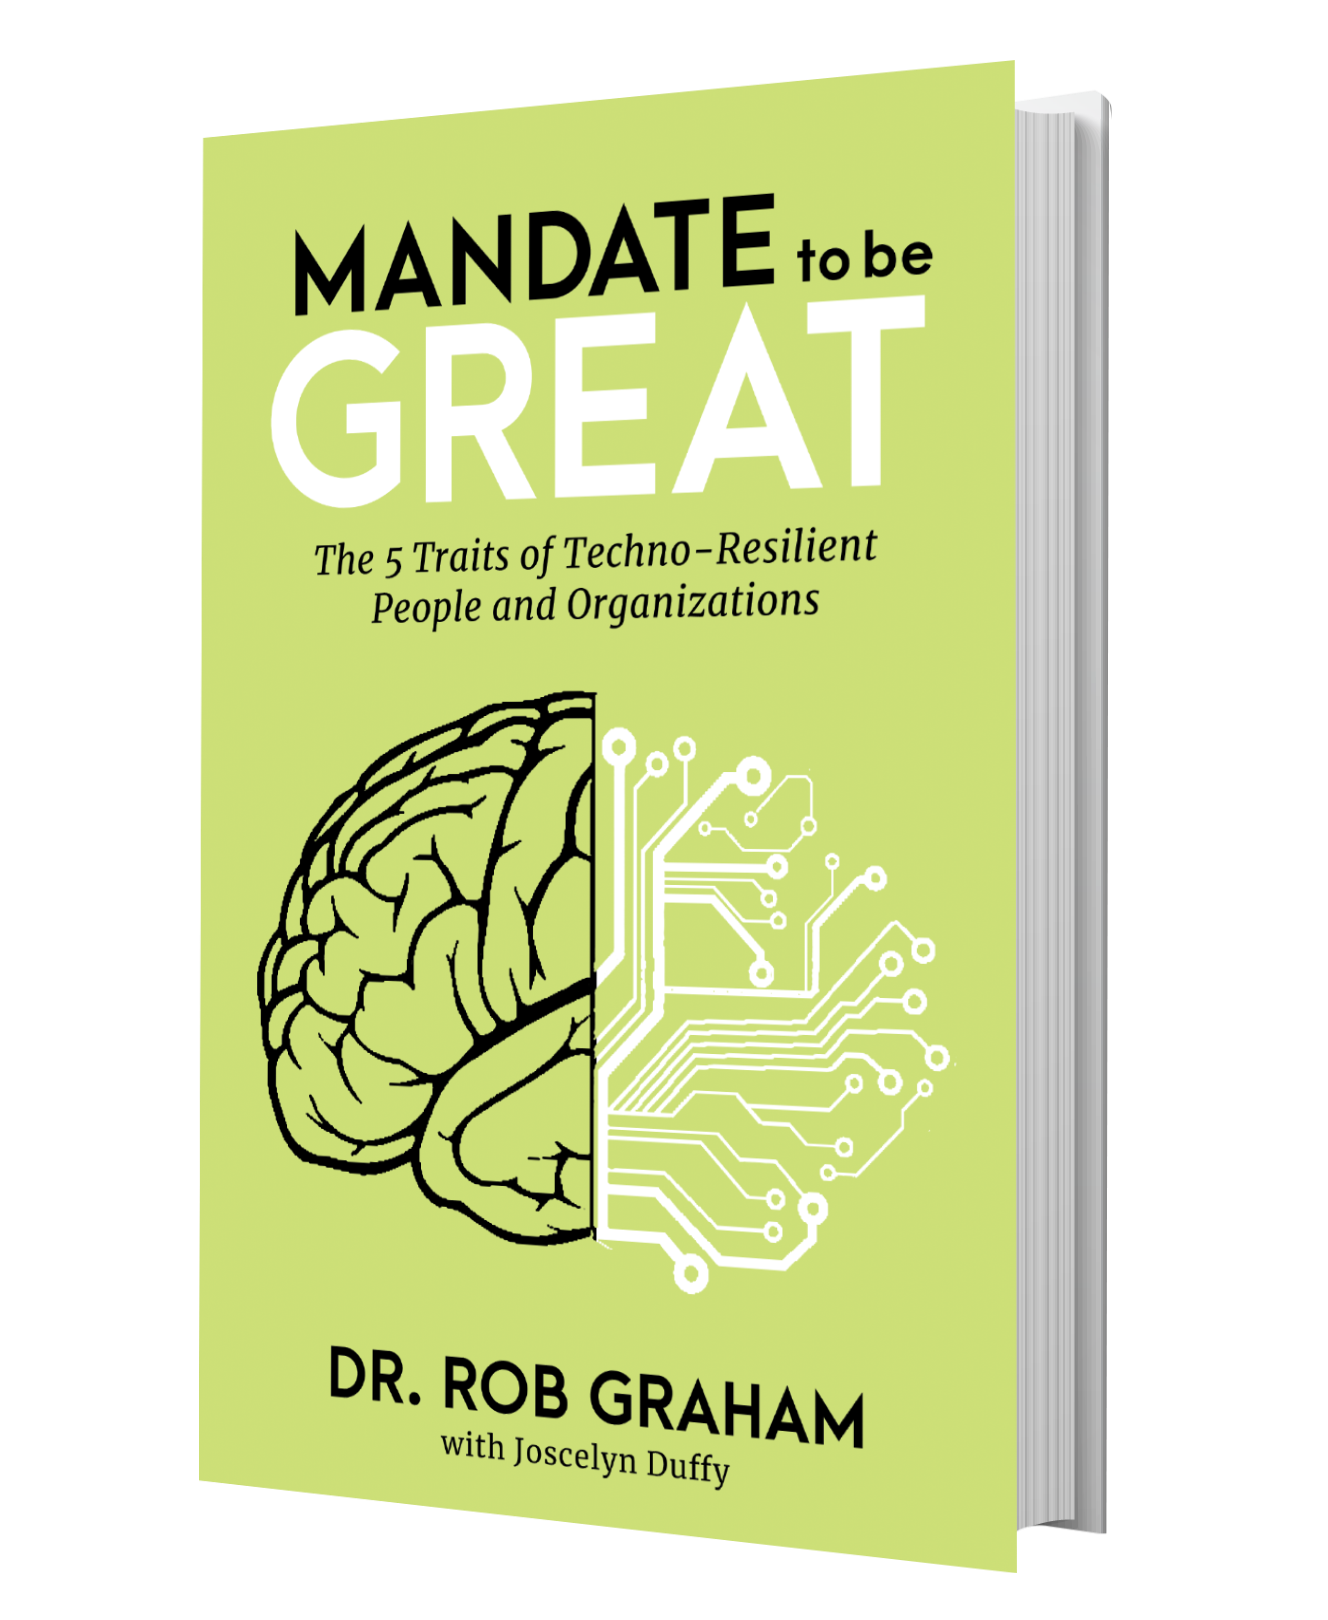 Mandate to Be Great_Dr. Rob Graham with Joscelyn Duffy